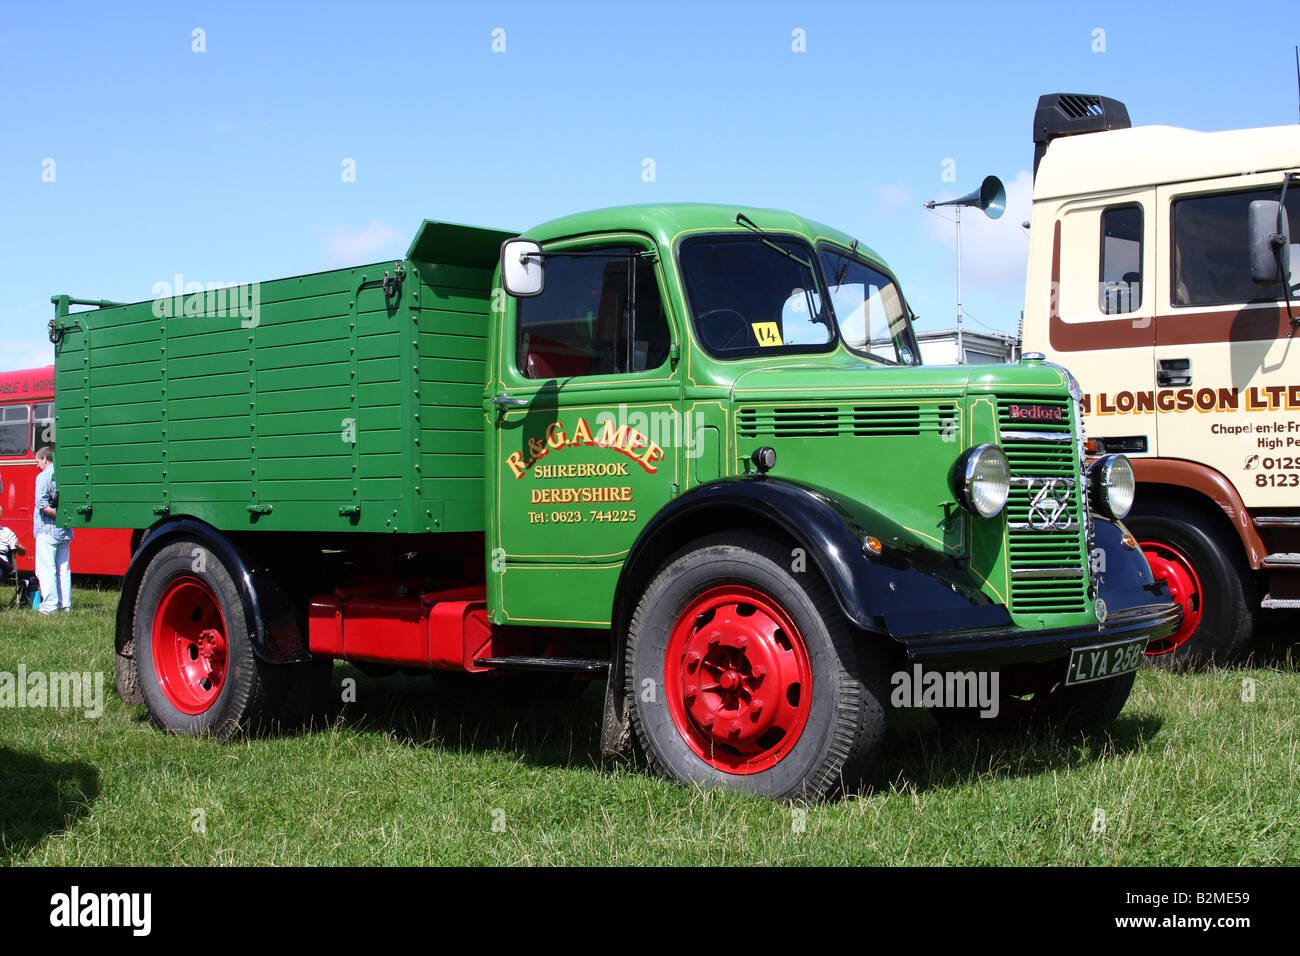 A vintage Bedford lorry at the Cromford Steam Engine Rally 2008. - Stock Image